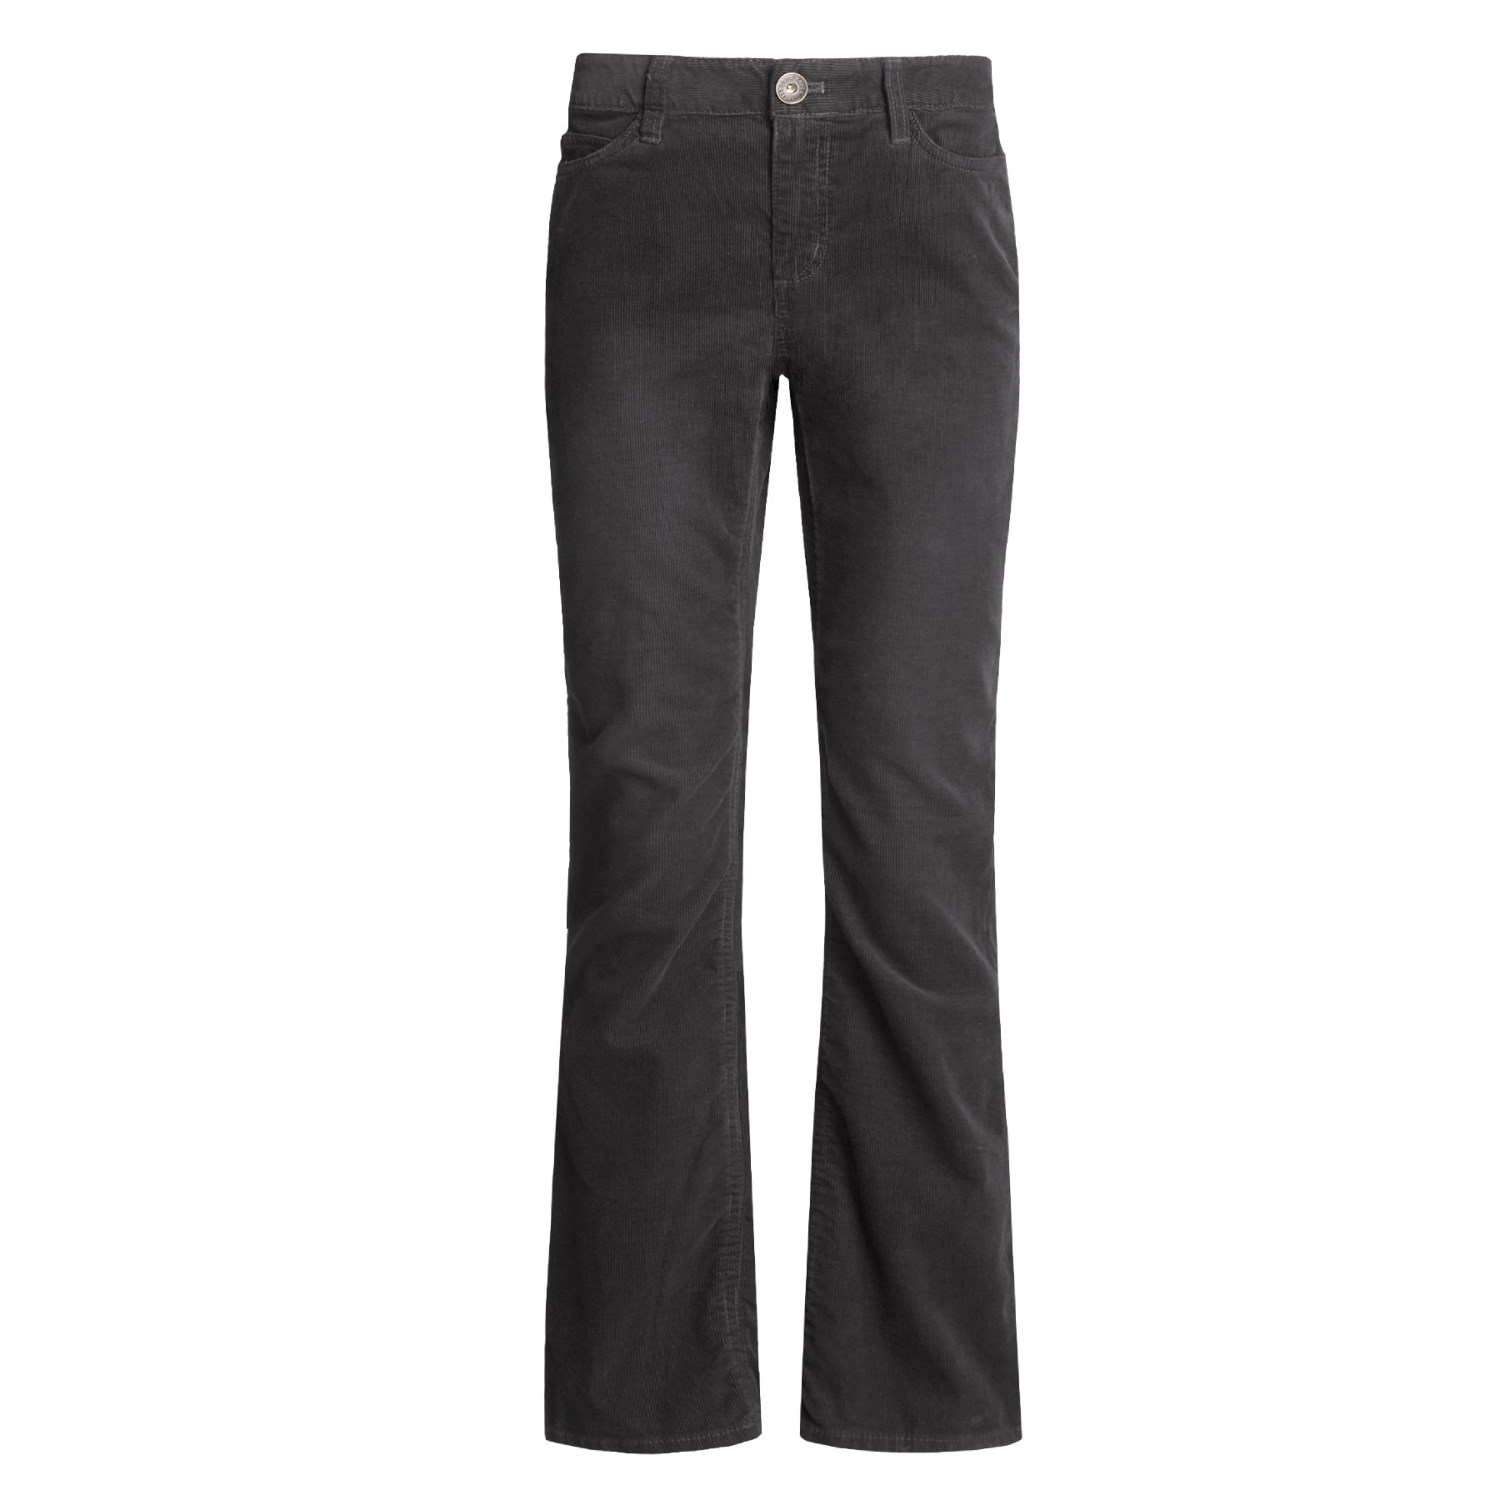 Stand Tall and Showcase Your Curves With Our %color %size Pants for Tall Women. If you're 5'9